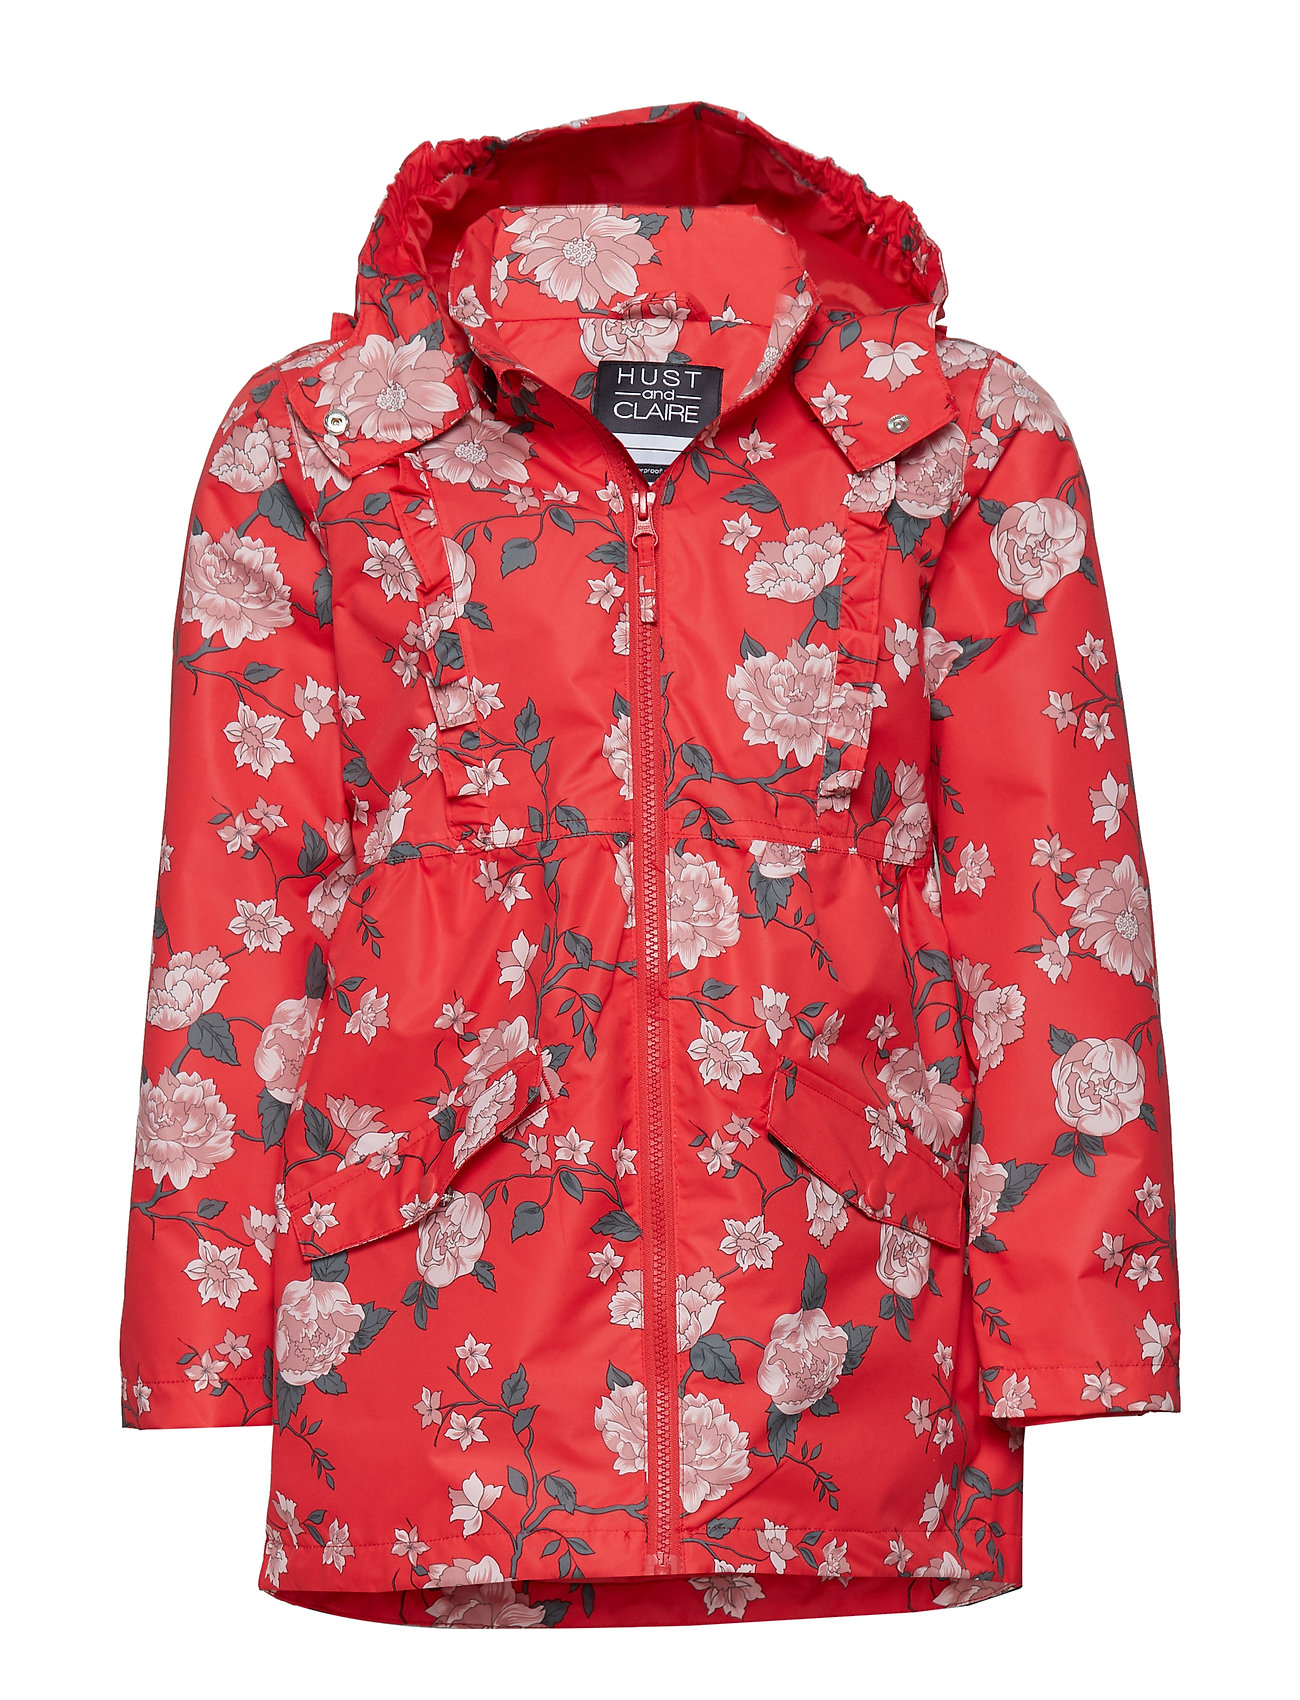 Hust & Claire Ona - Jacket - POPPY RED